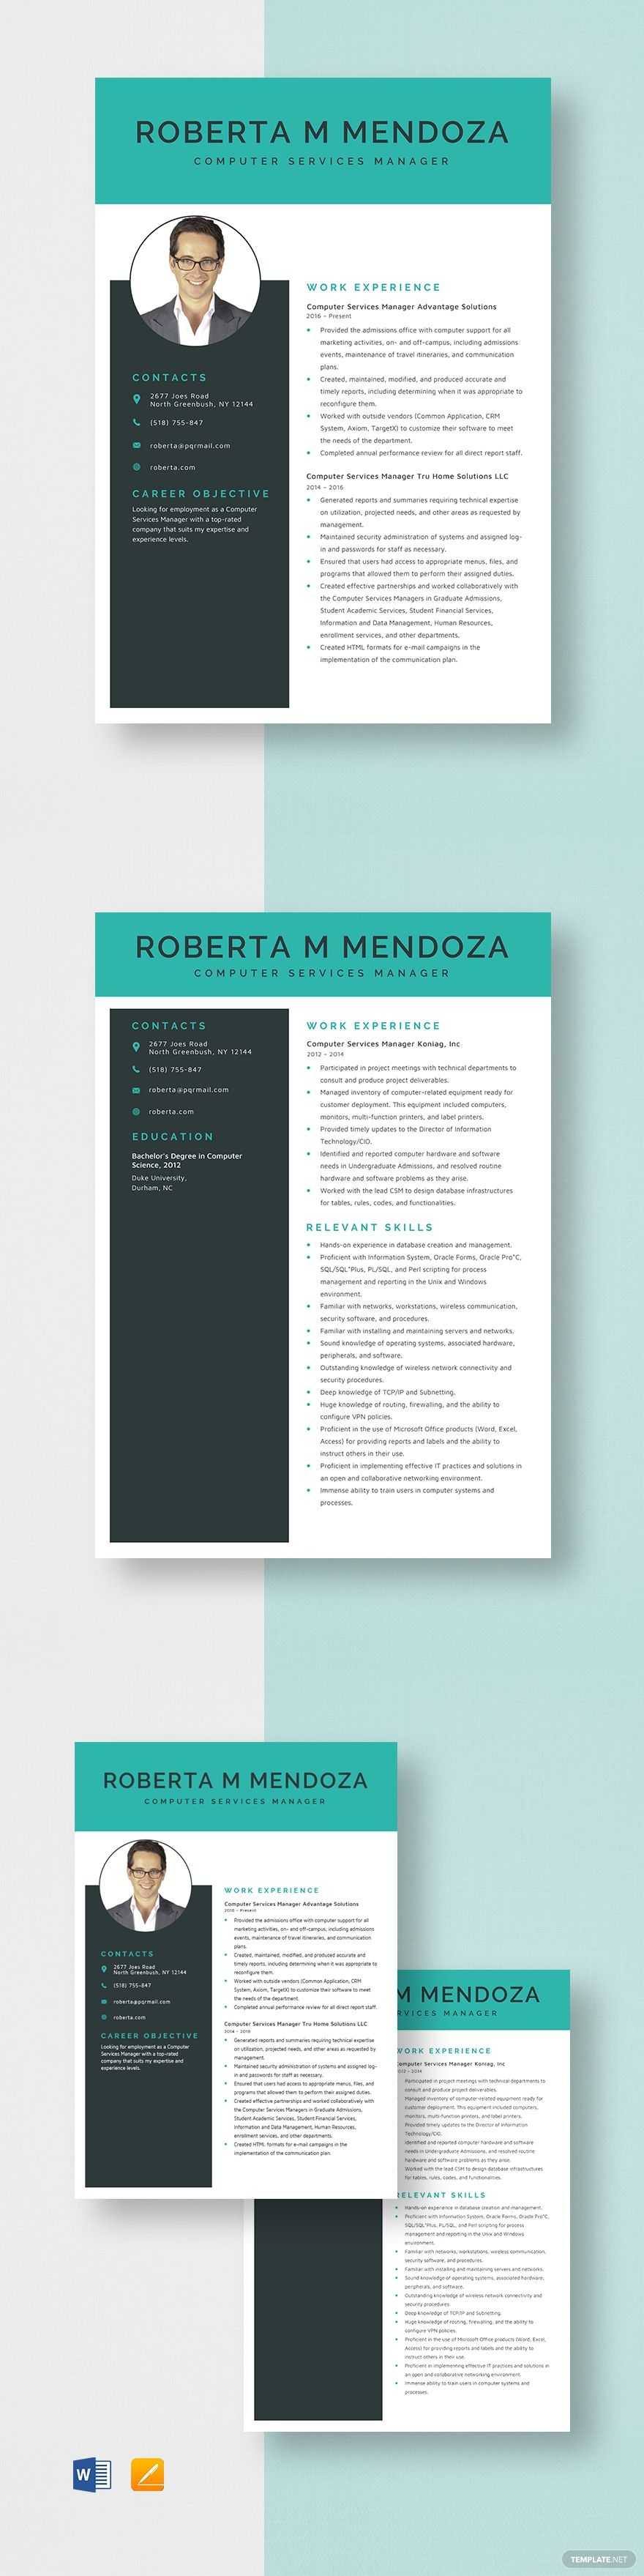 Computer service manager resume template ad paid